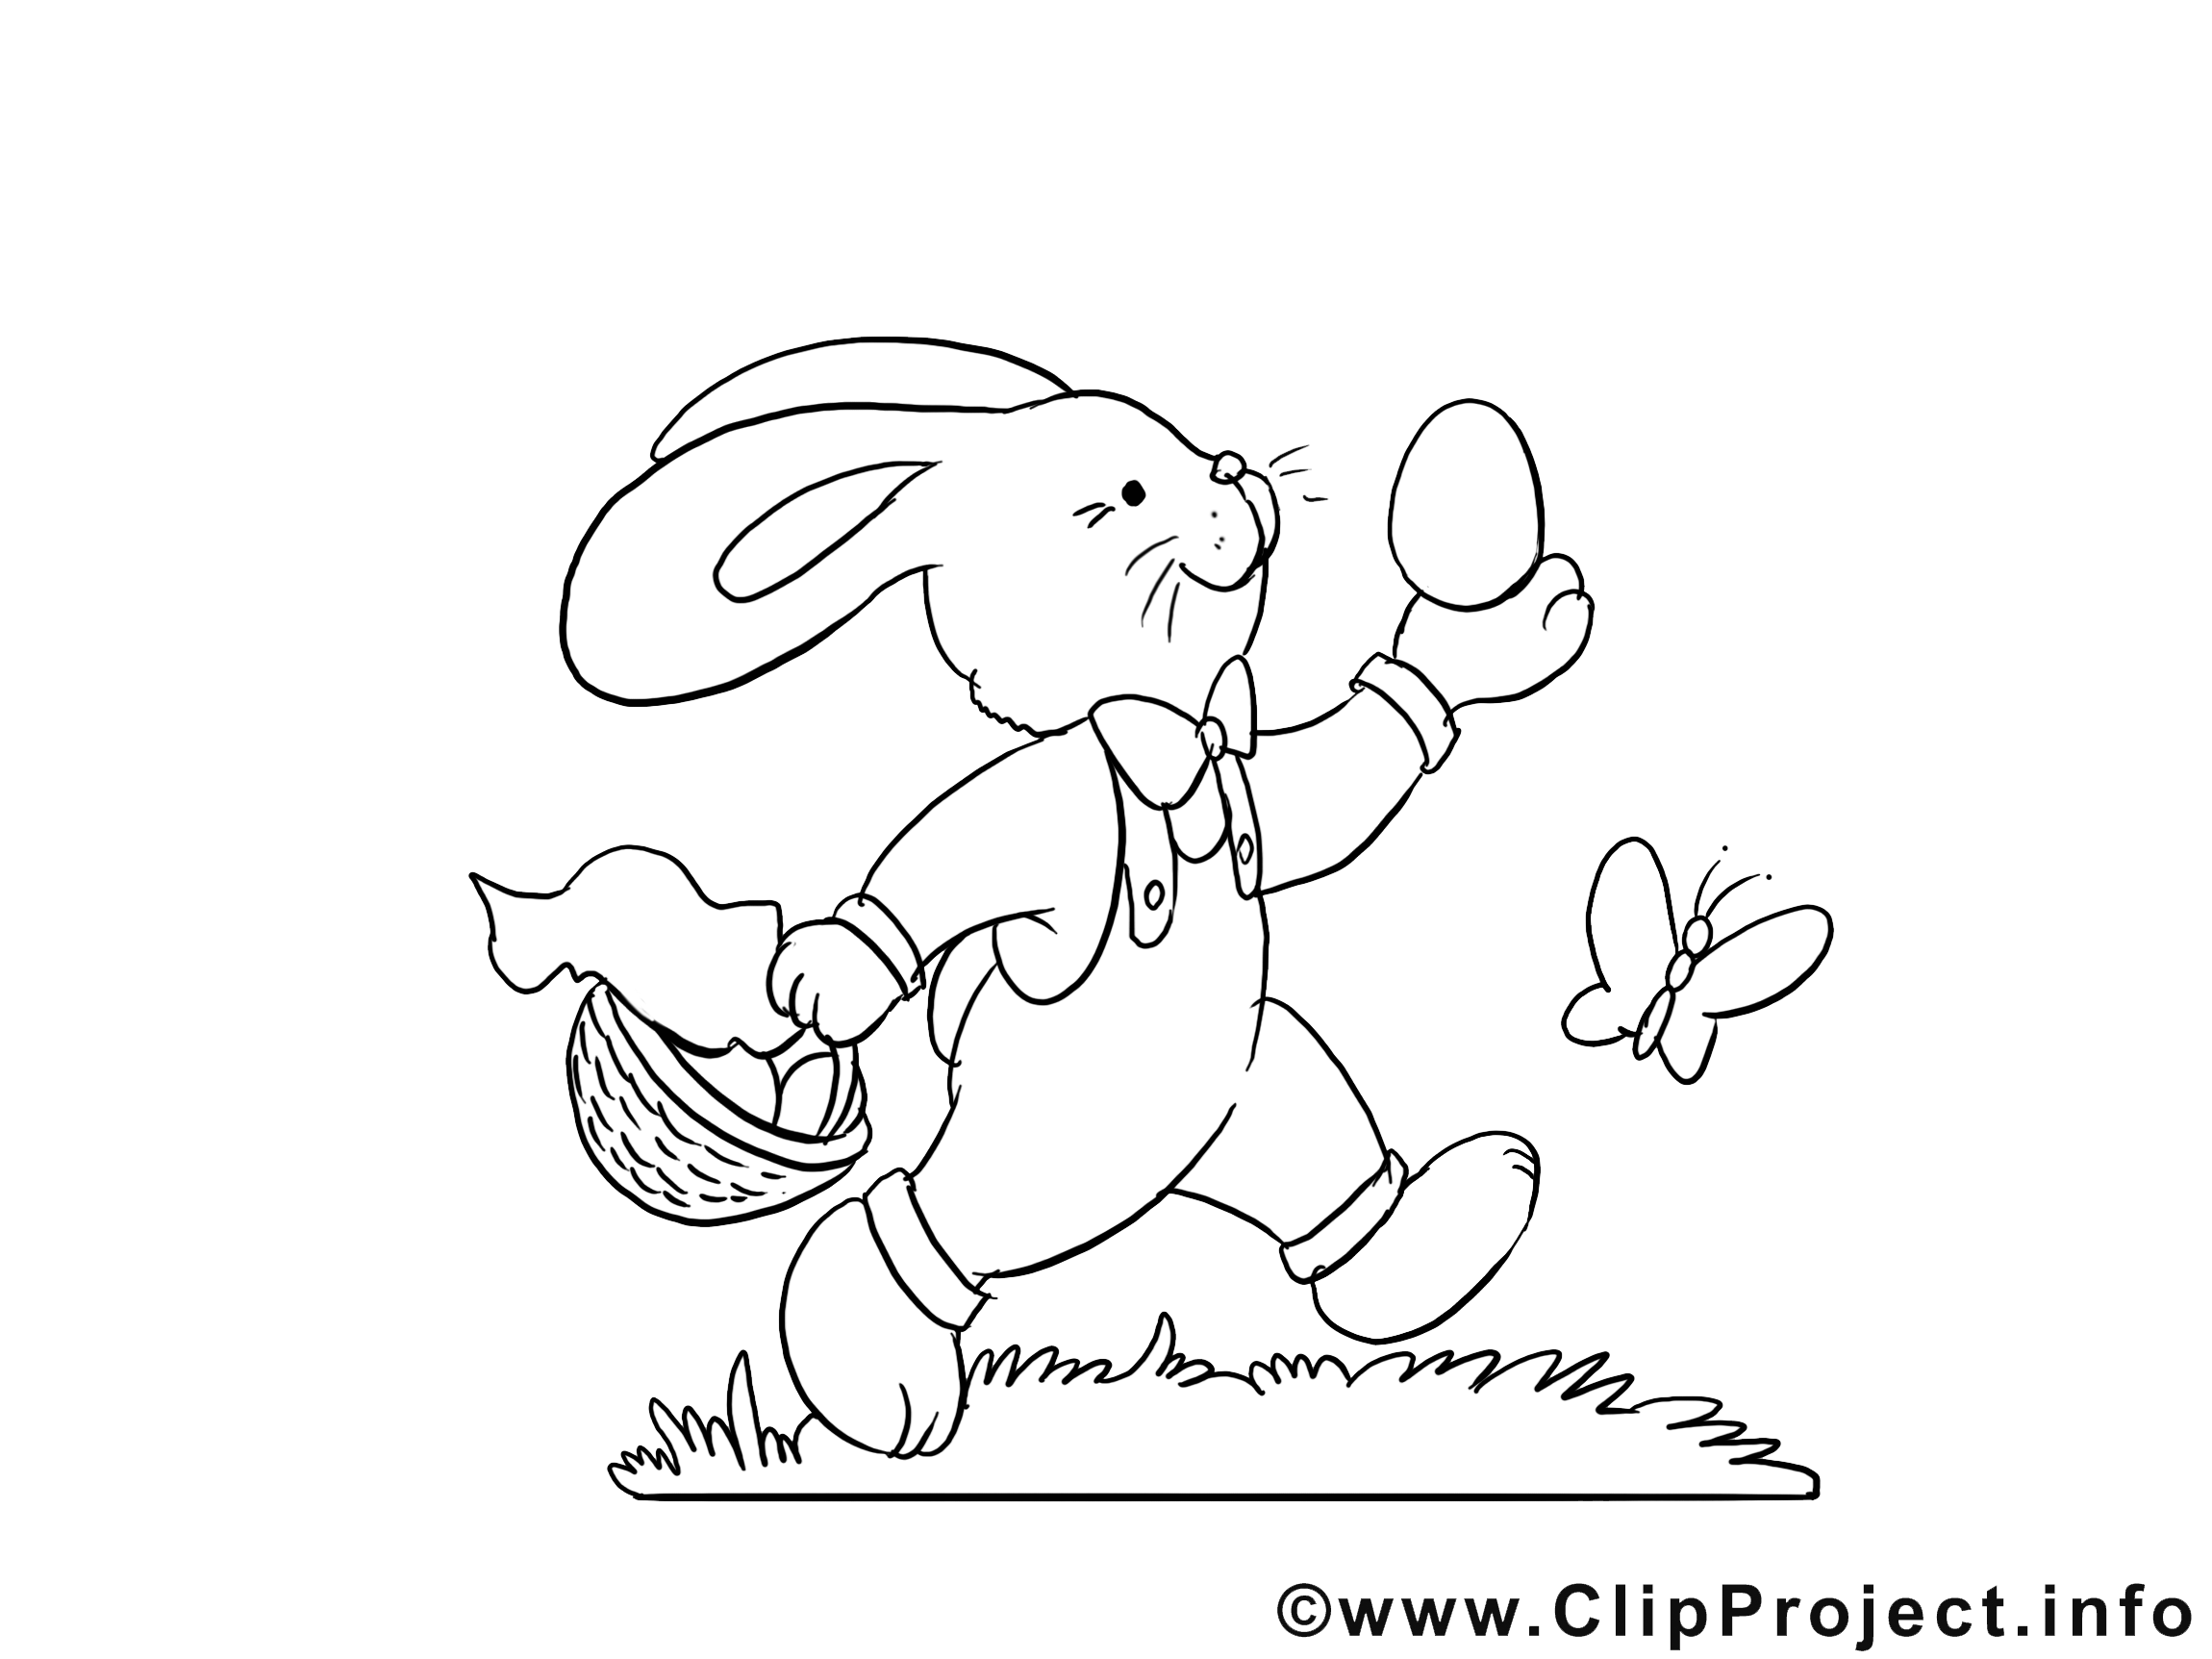 Fresh Easter Coloring Pages #Coloring #Coloring Pages #Coloring